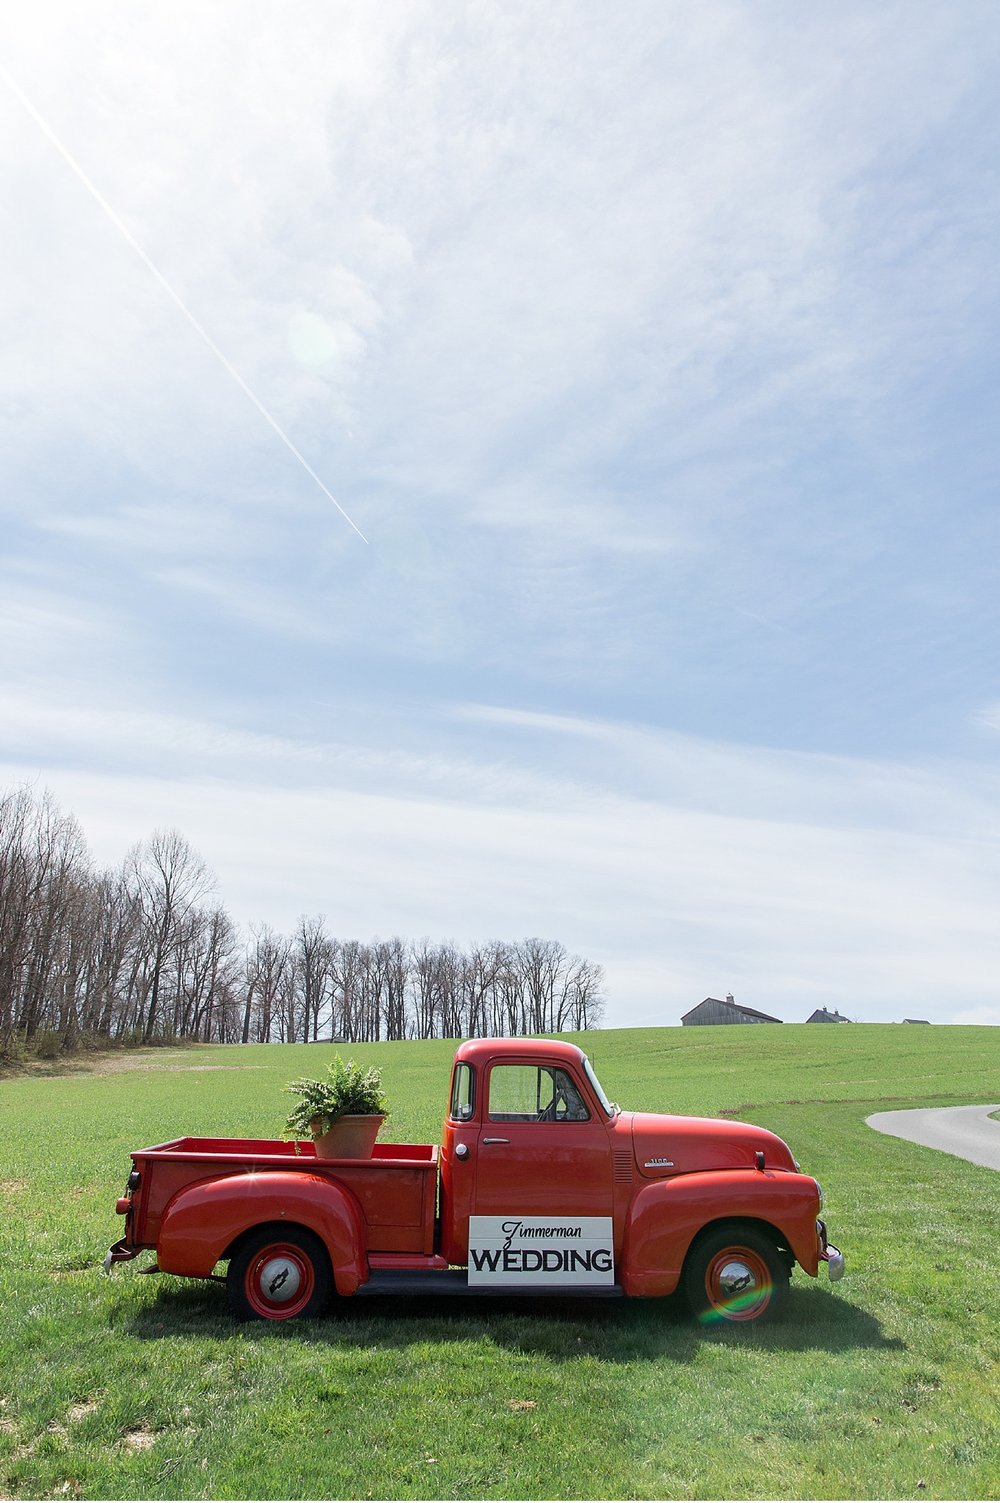 Vintage red truck at Beautiful Lancaster County Farmland wedding at sunset photography photo_1192.jpg